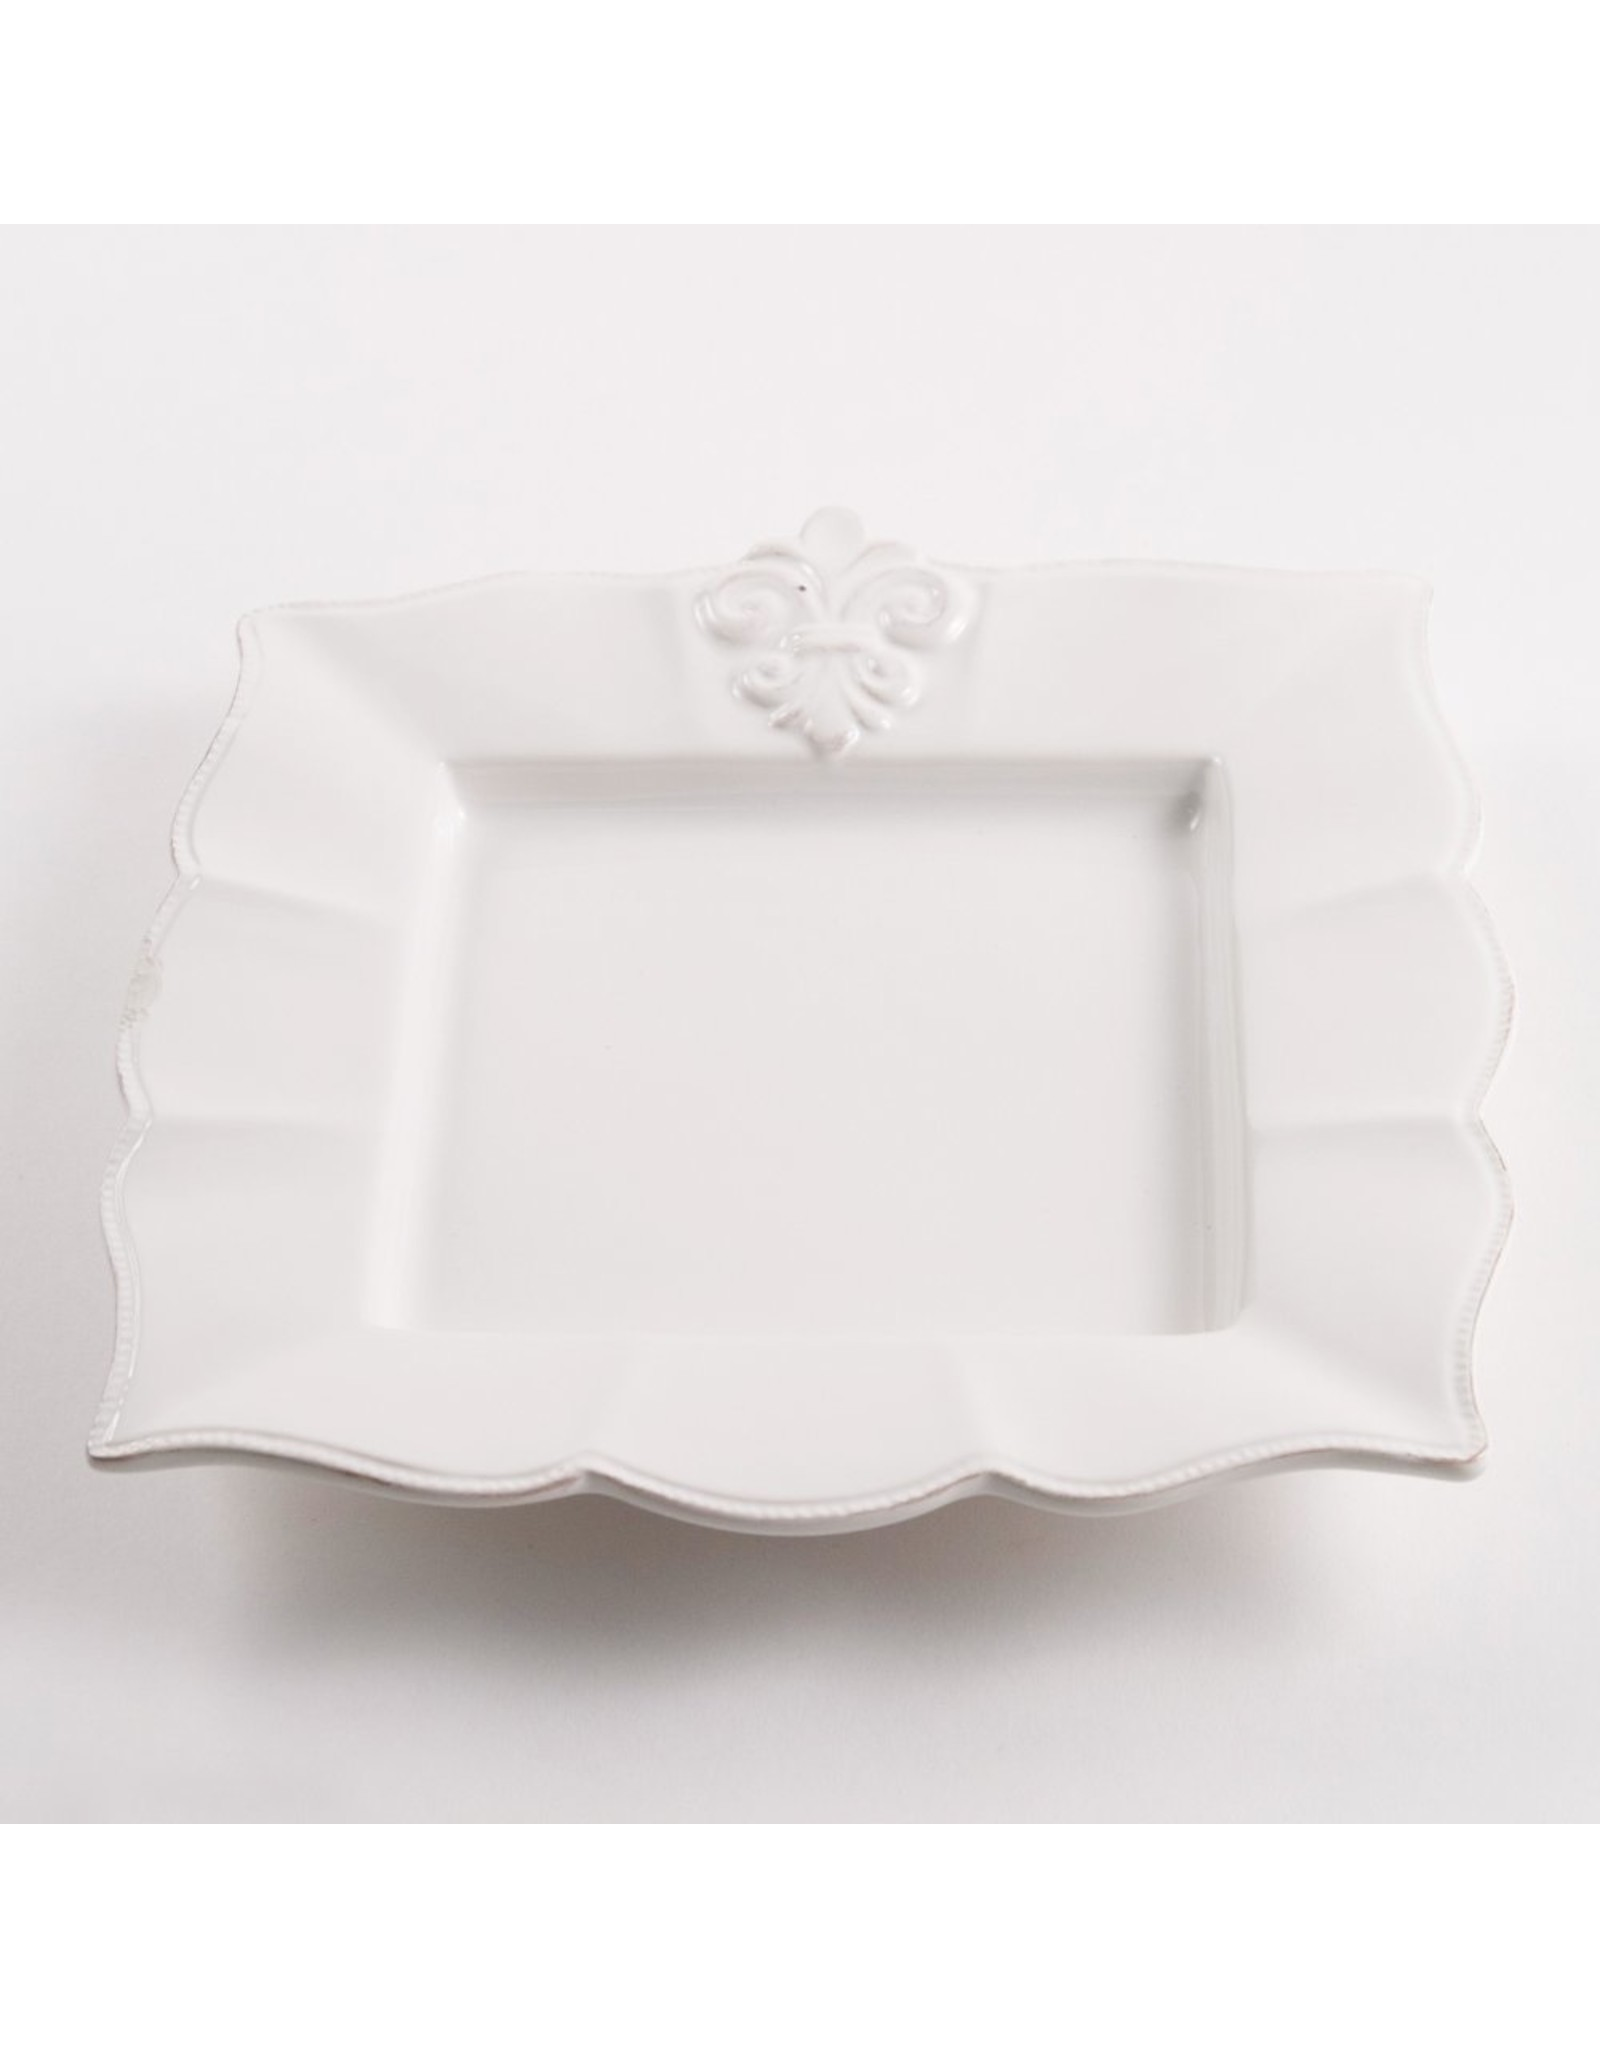 The Royal Standard FDL Square Plate, Antique White